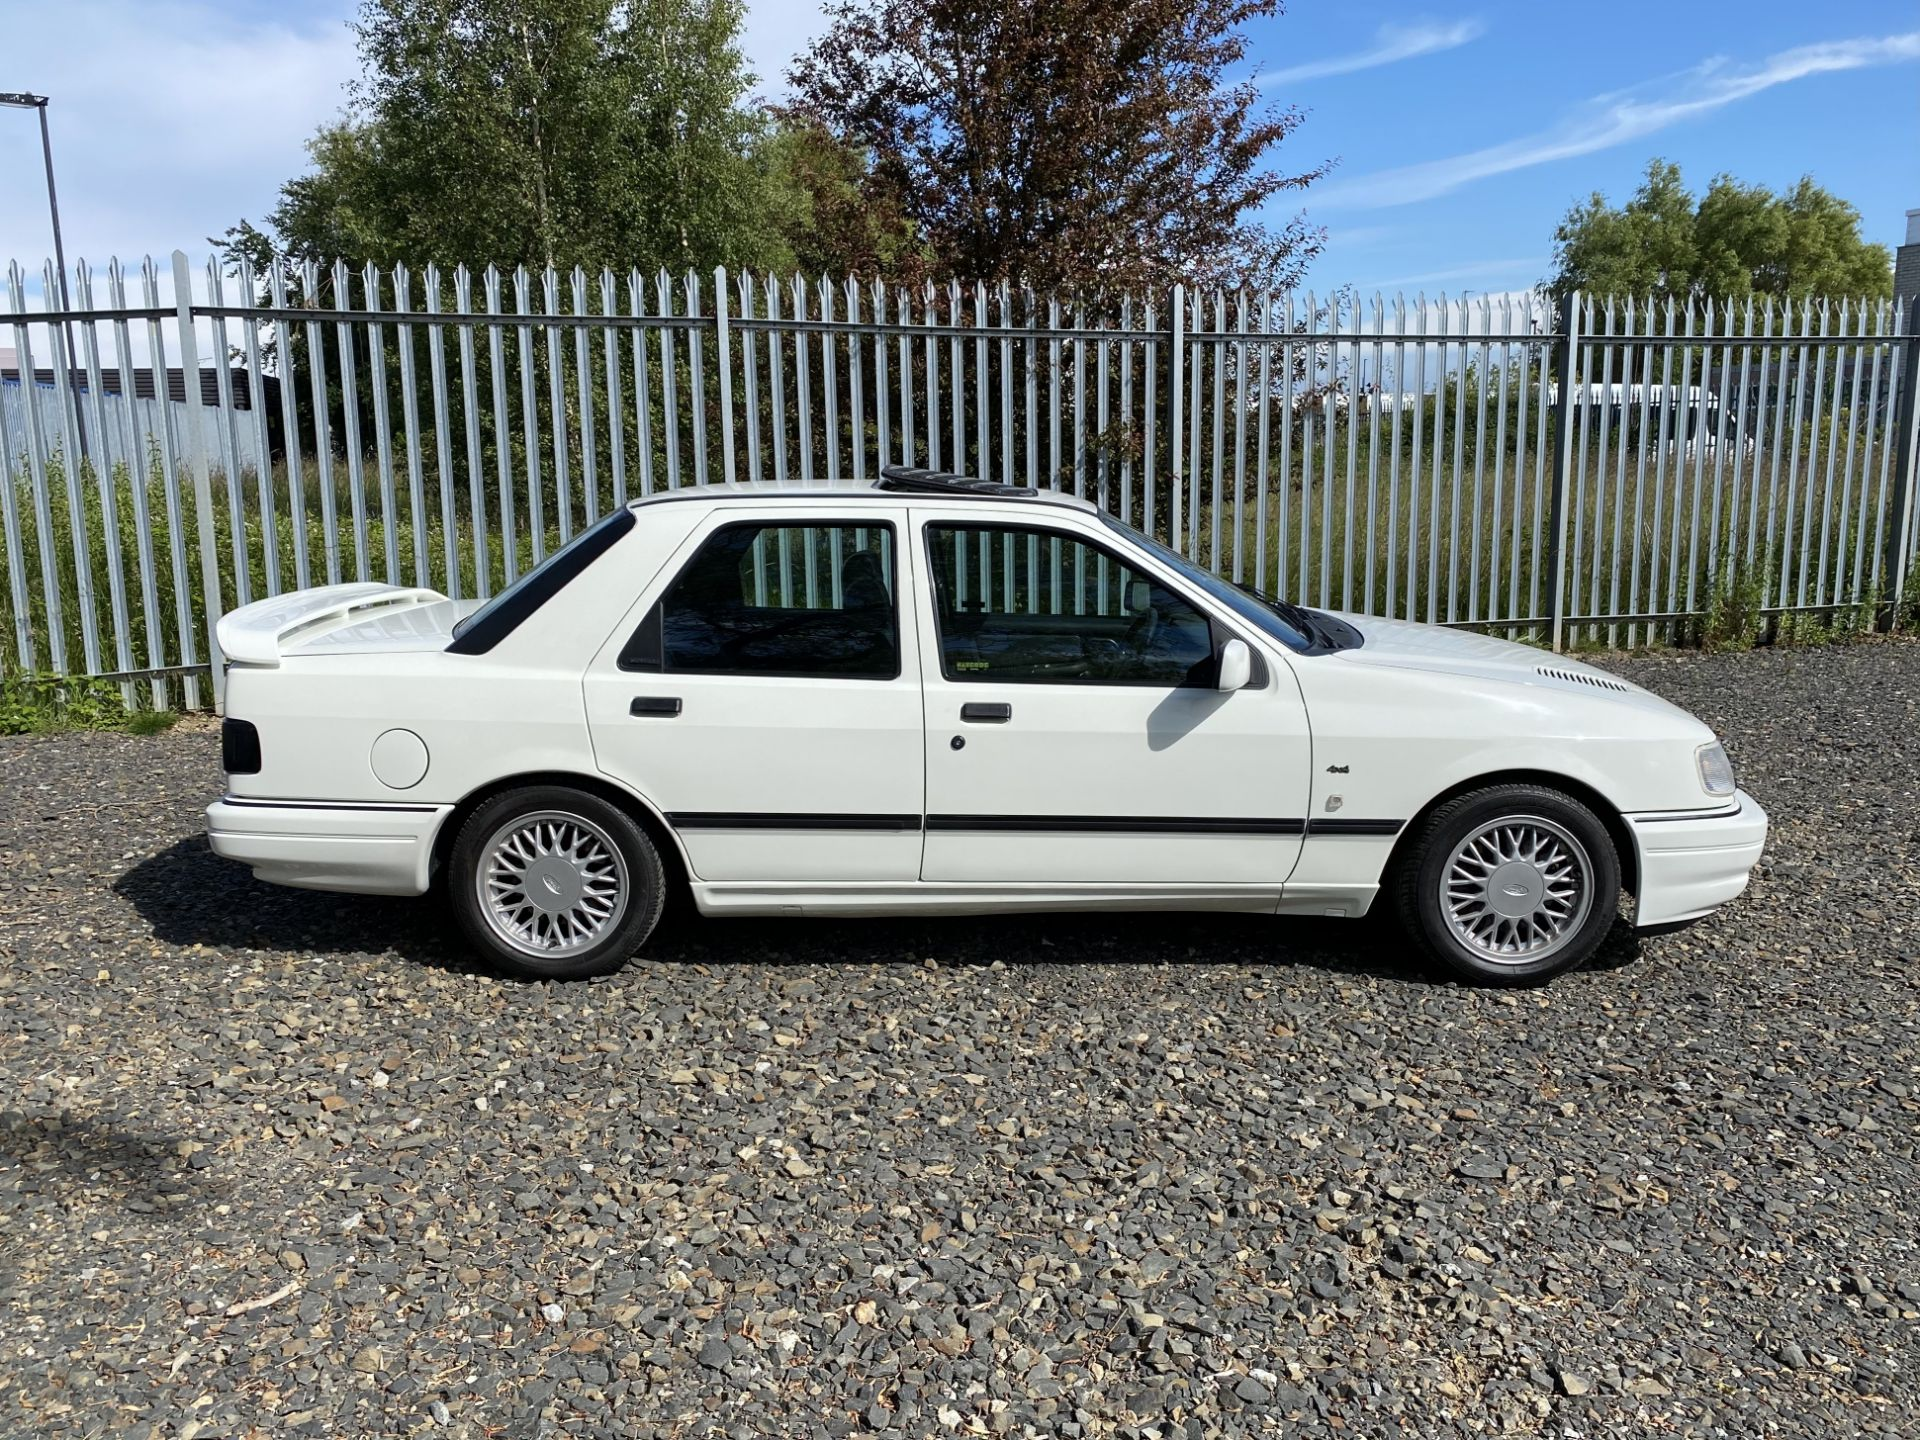 Ford Sierra Sapphire Cosworth 4x4 - Image 4 of 55